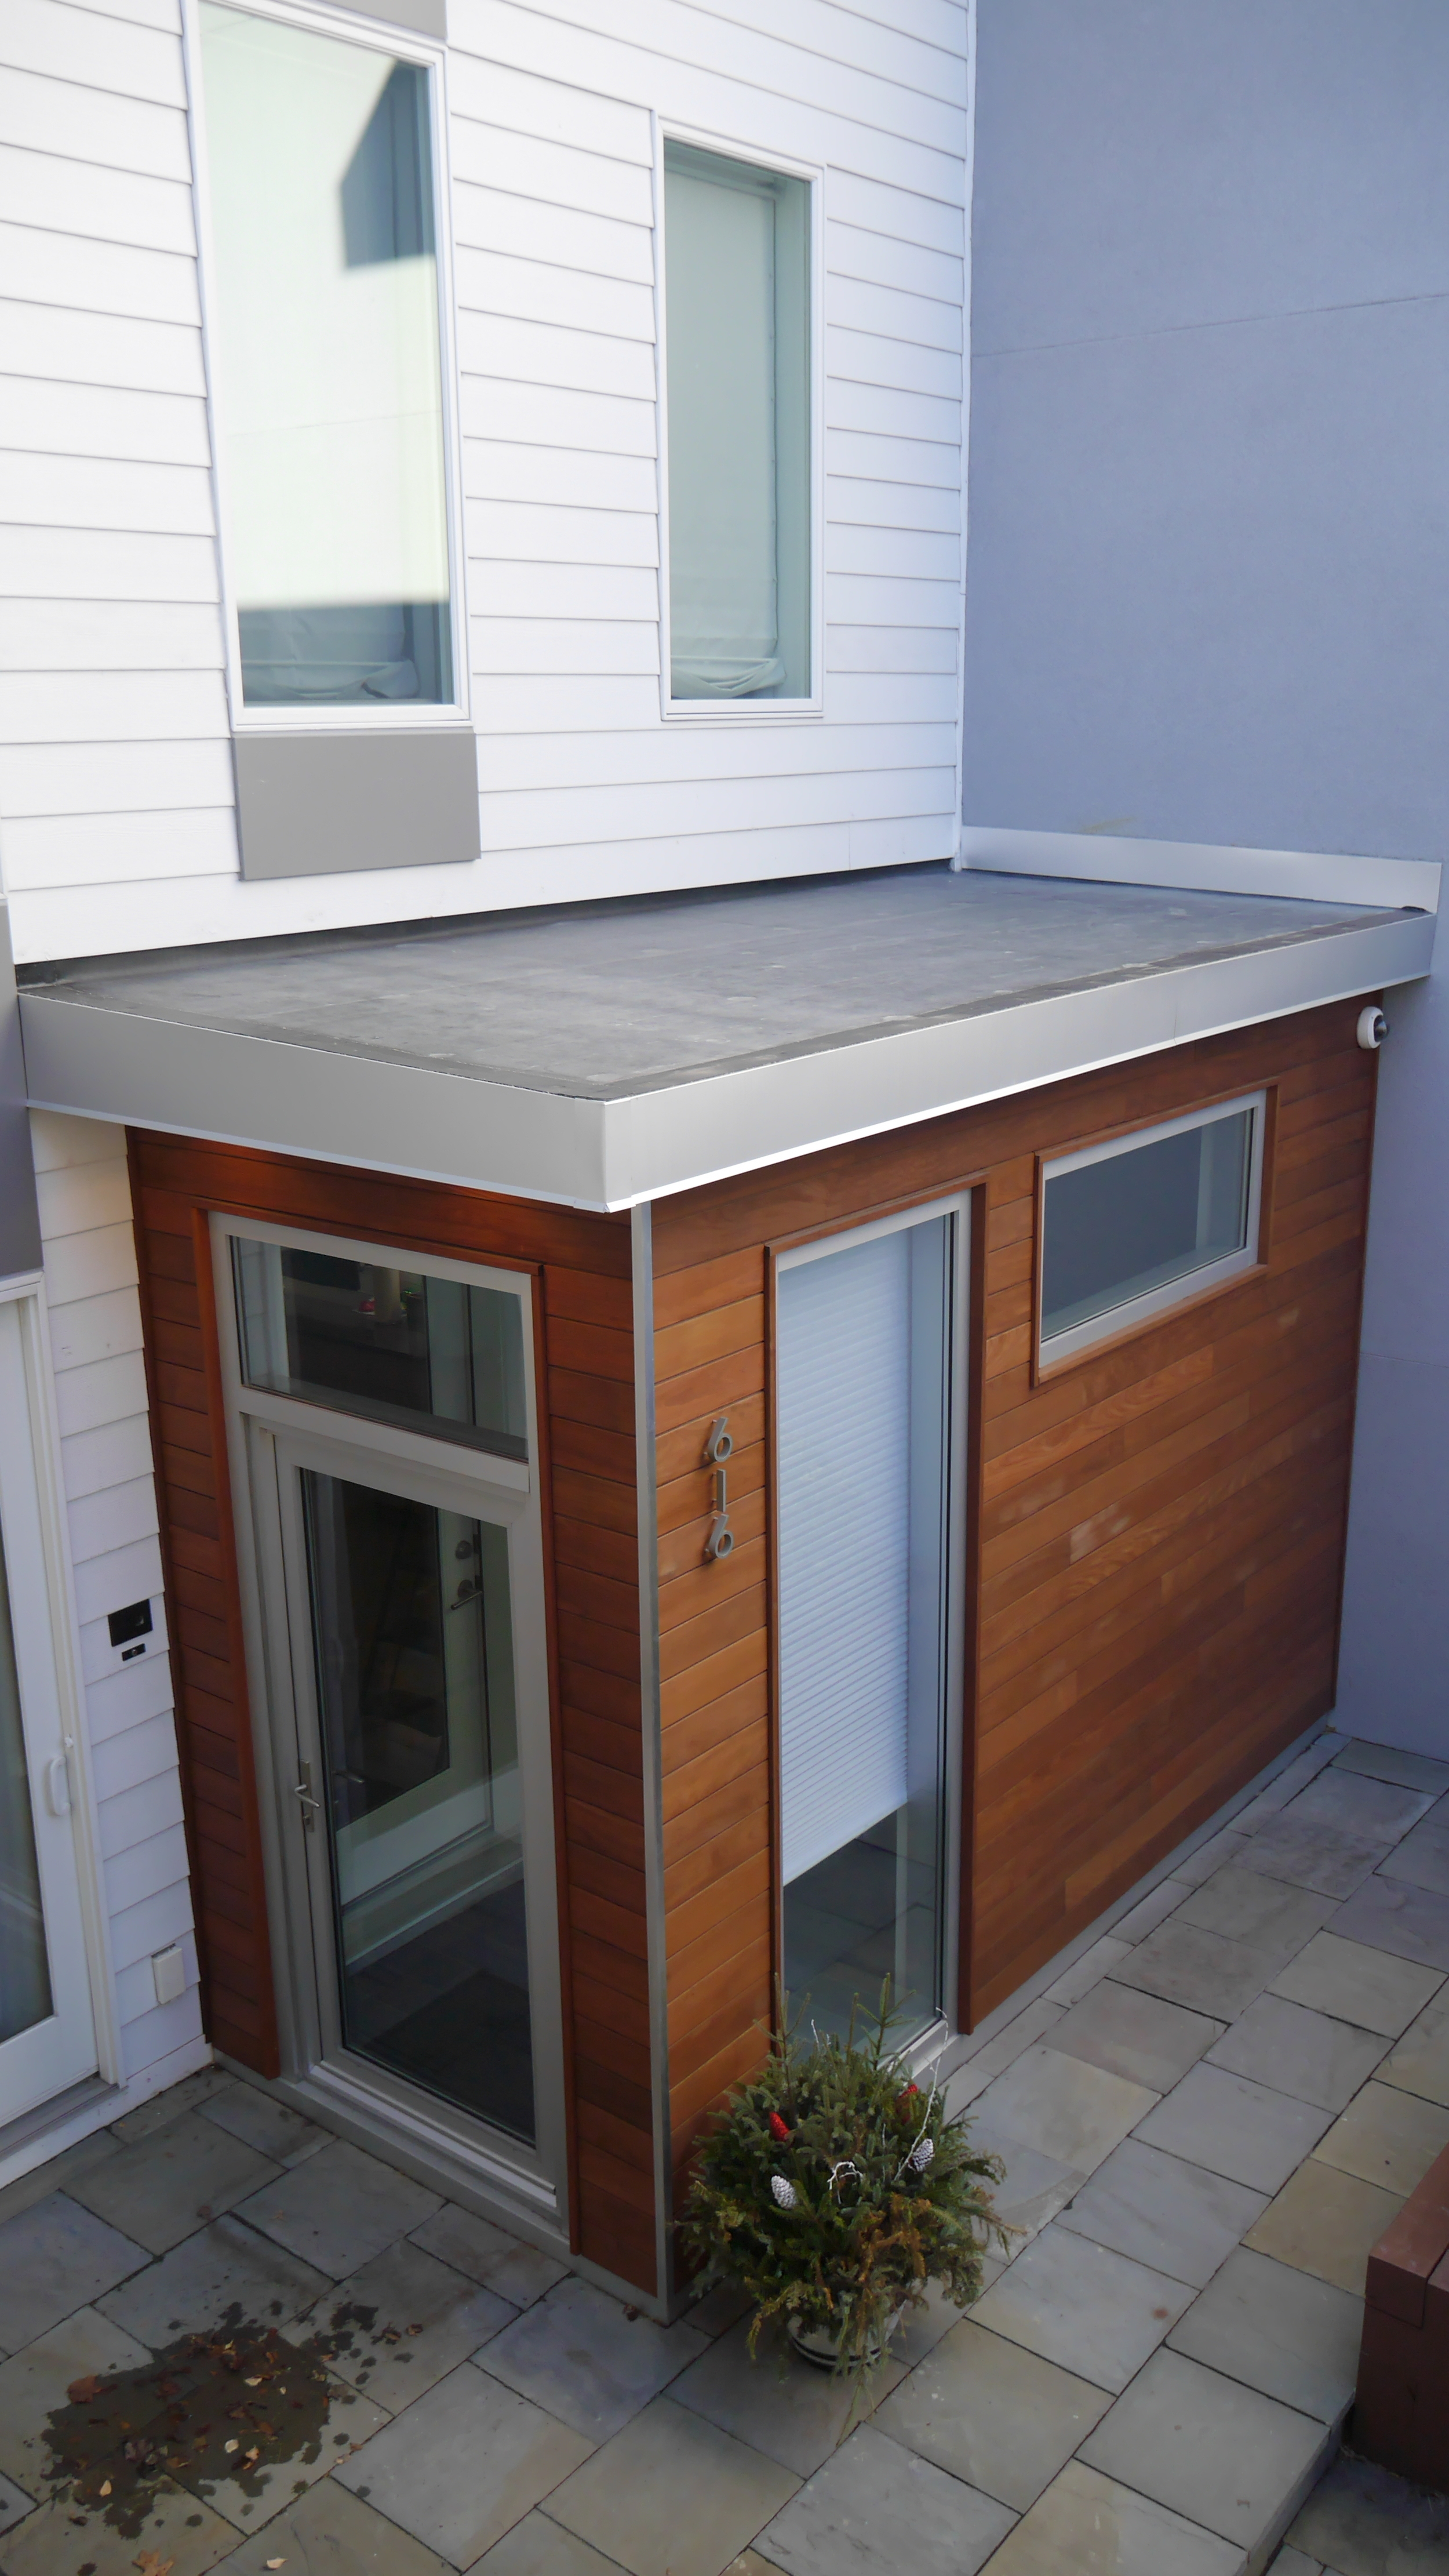 Mataverde Ipe Siding installation by Groundswell Contracting with EPDM roofing and anodized aluminum finishes